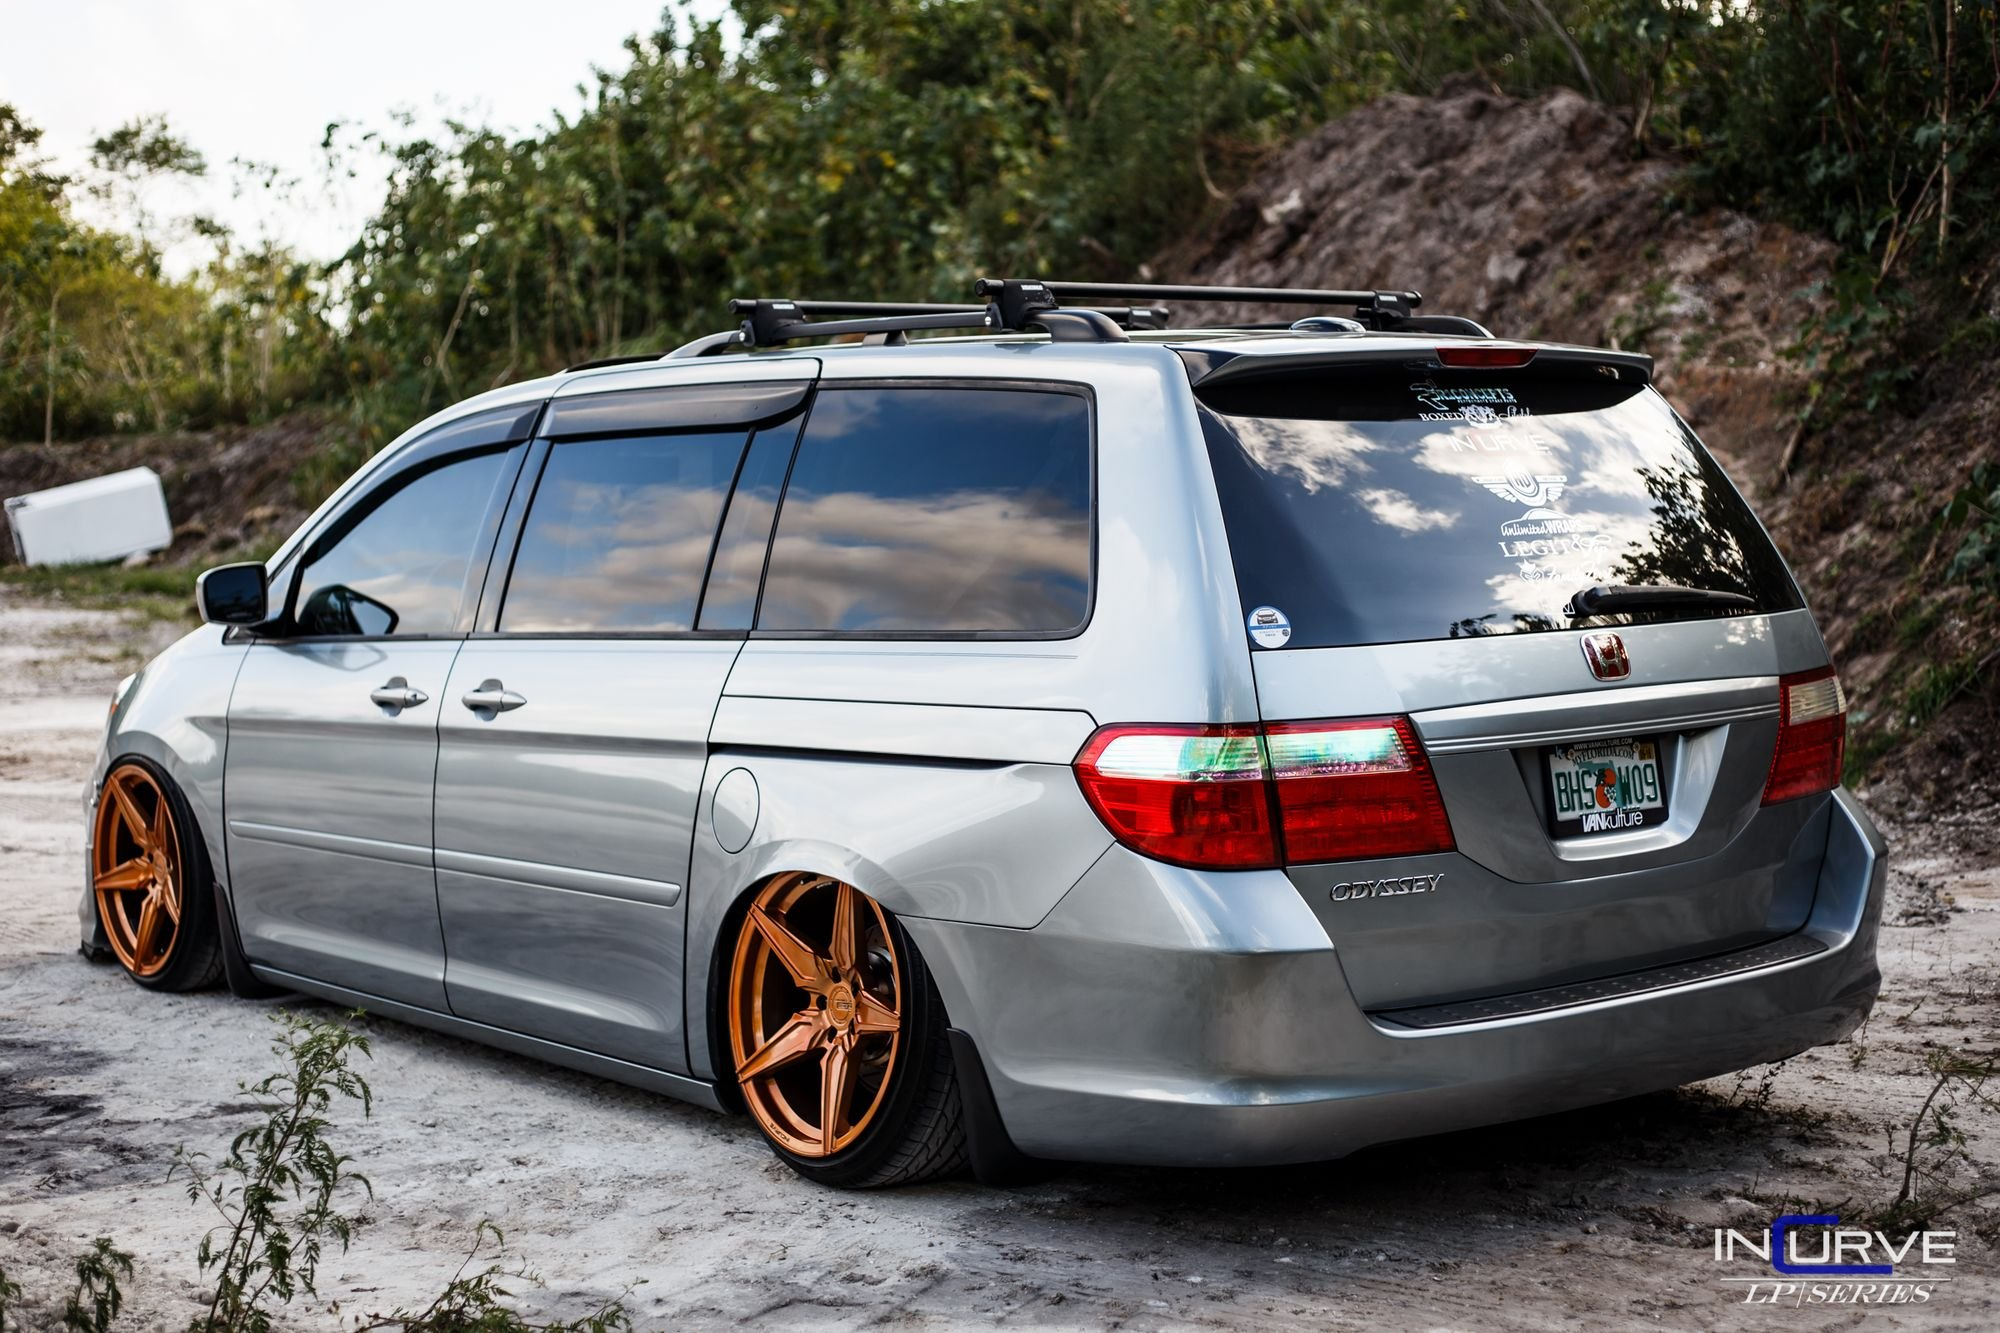 Full Package Modified Gray Honda Odyssey — CARiD Gallery